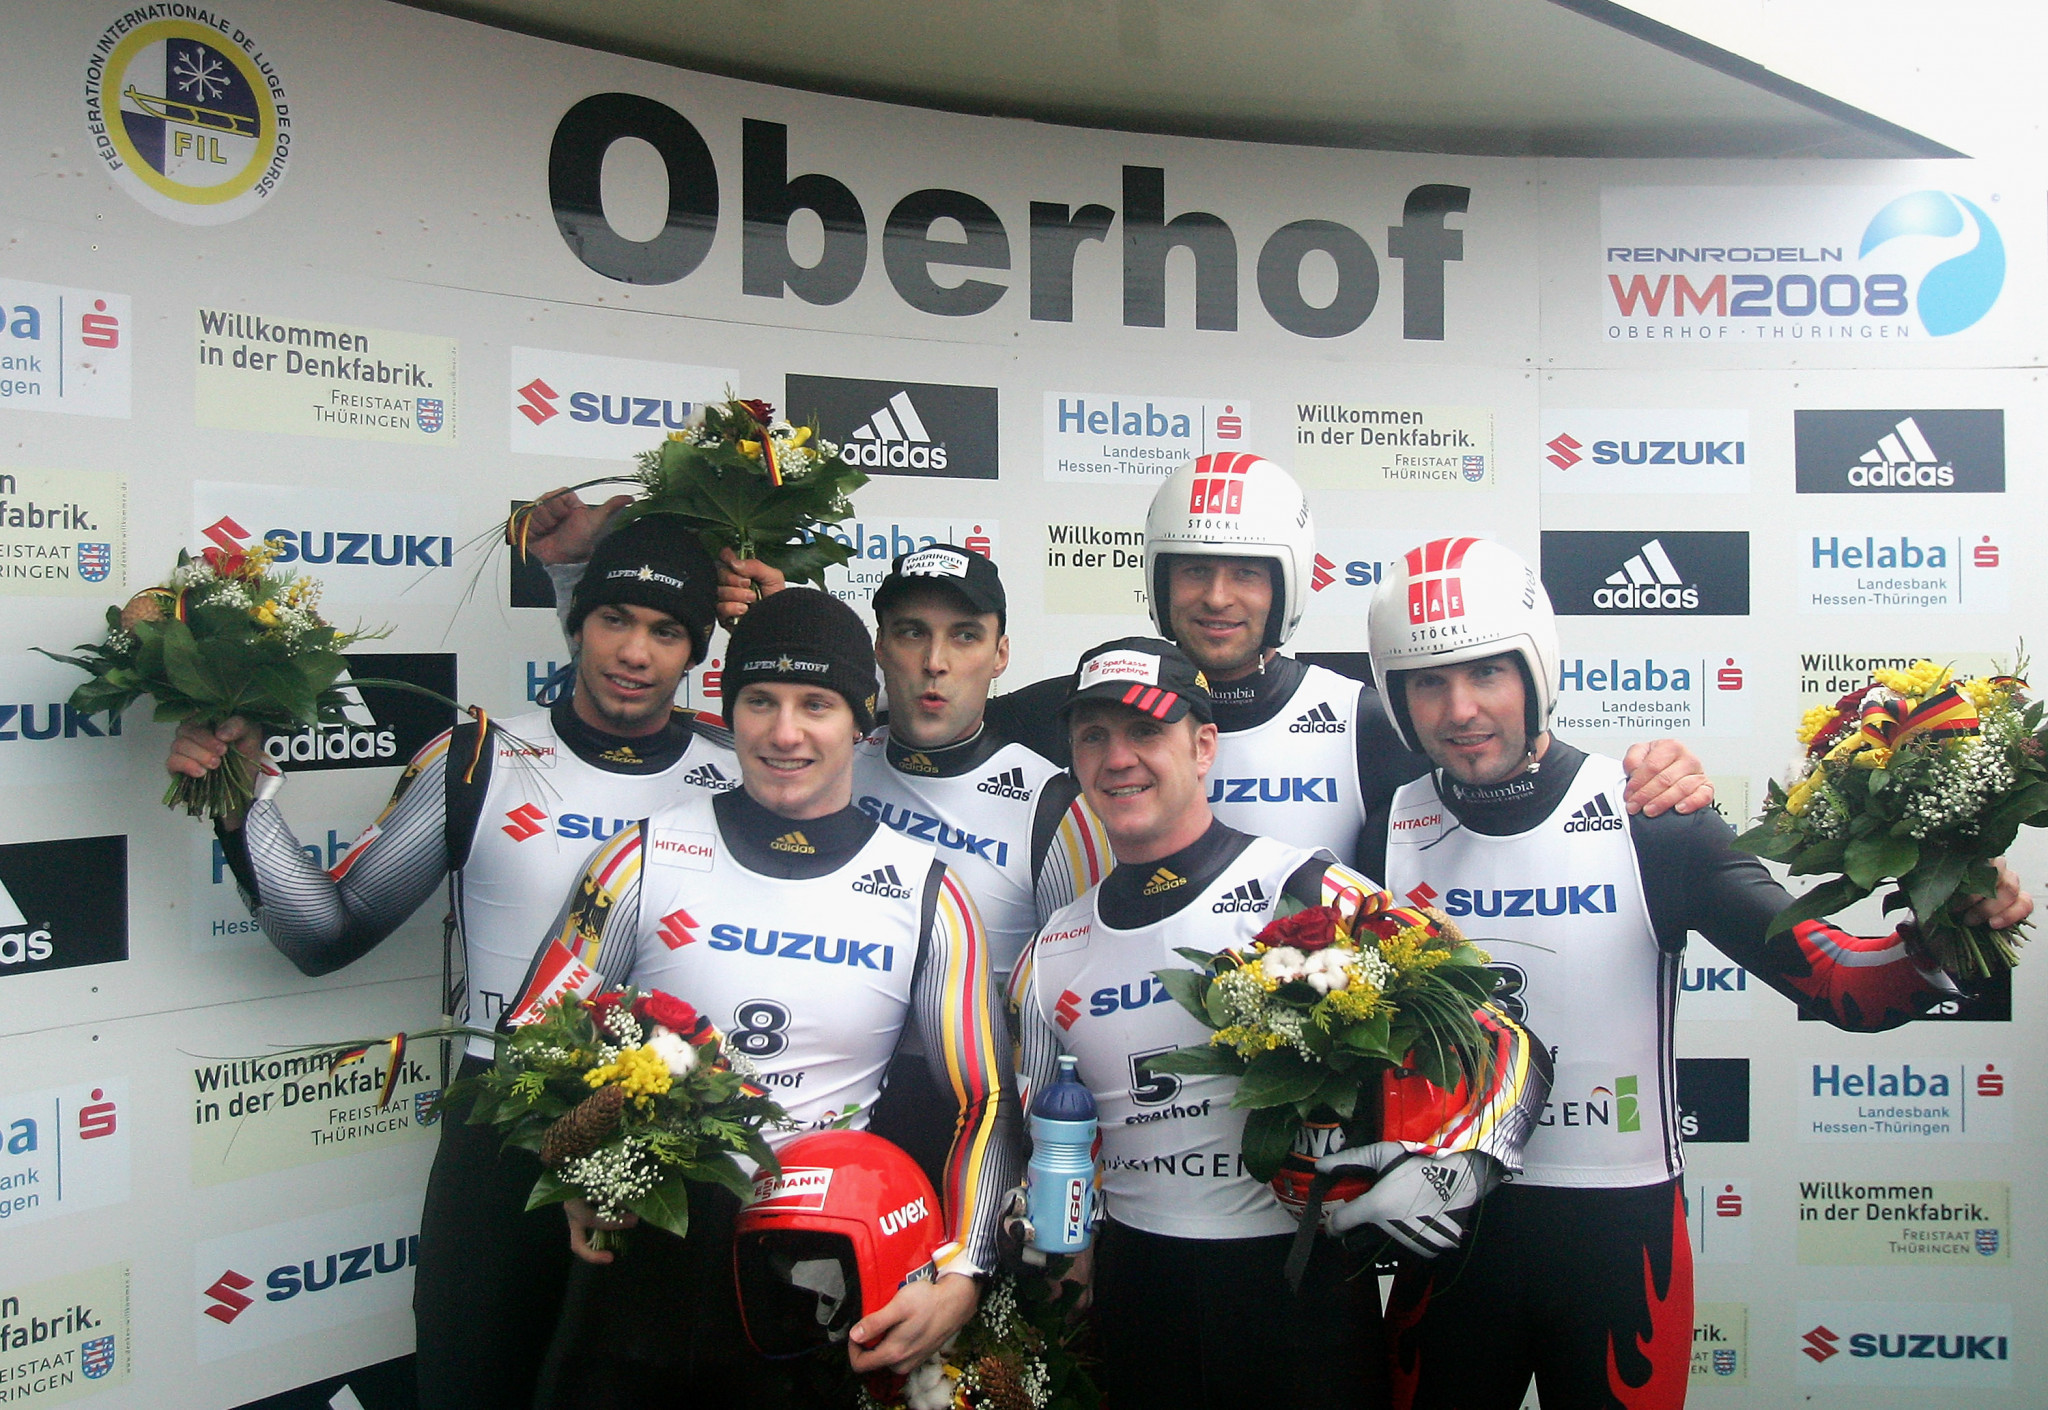 The last time Oberhof hosted the FIL World Championships in 2008 there was almost total domination from Germany, who won nine of the 12 medals, including all four gold ©Getty Images